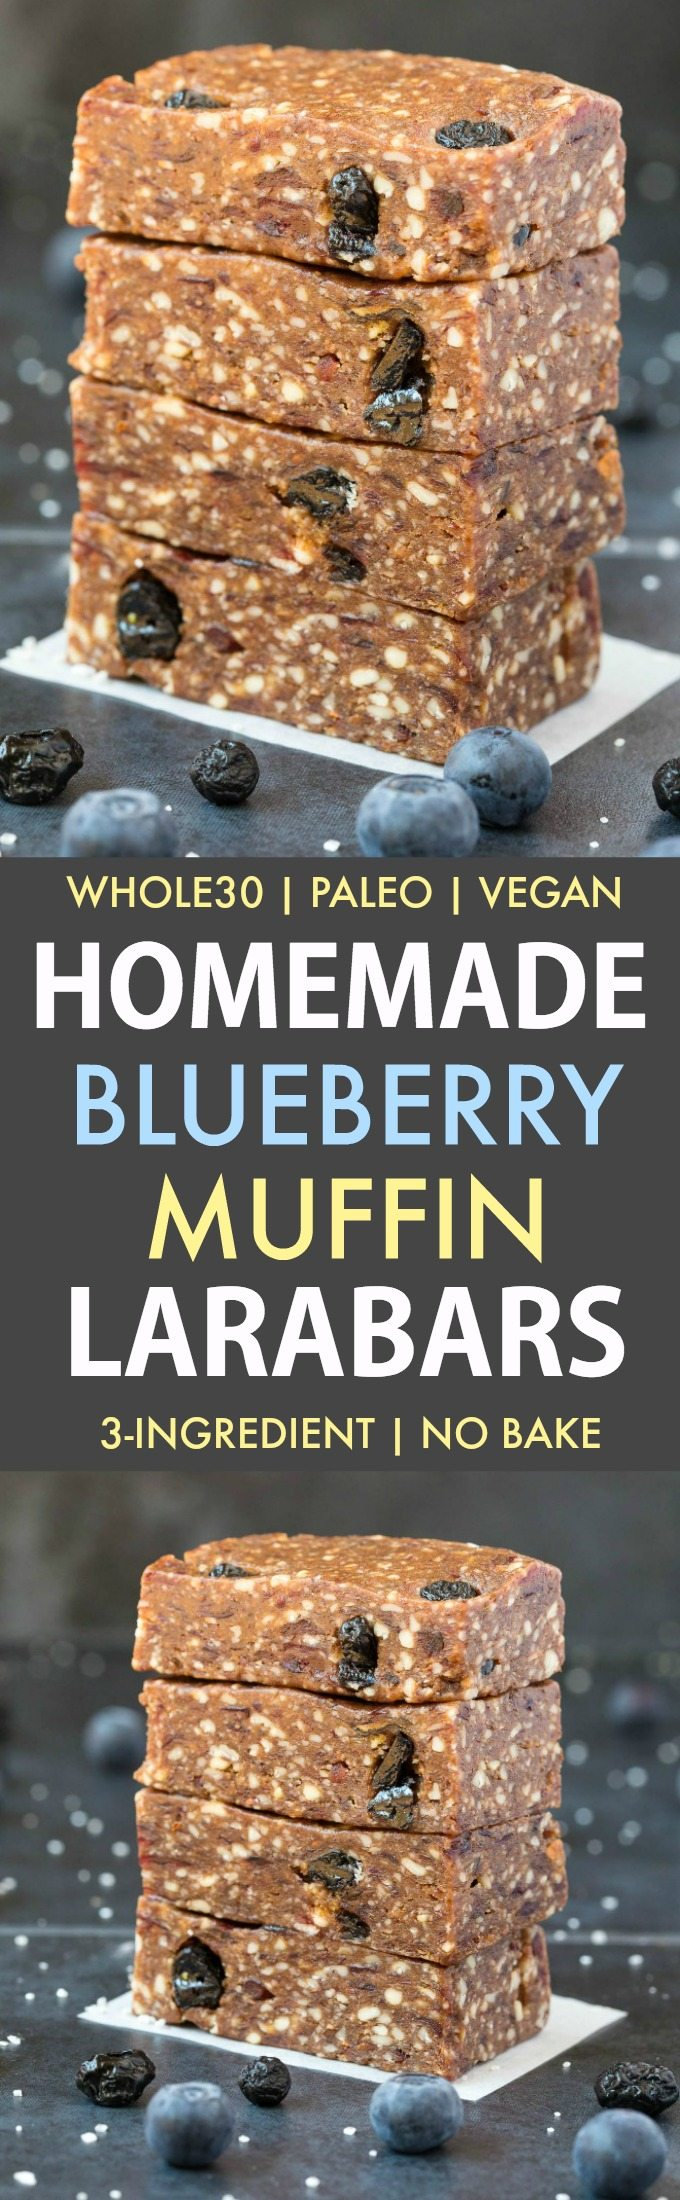 blueberry muffin raw bars